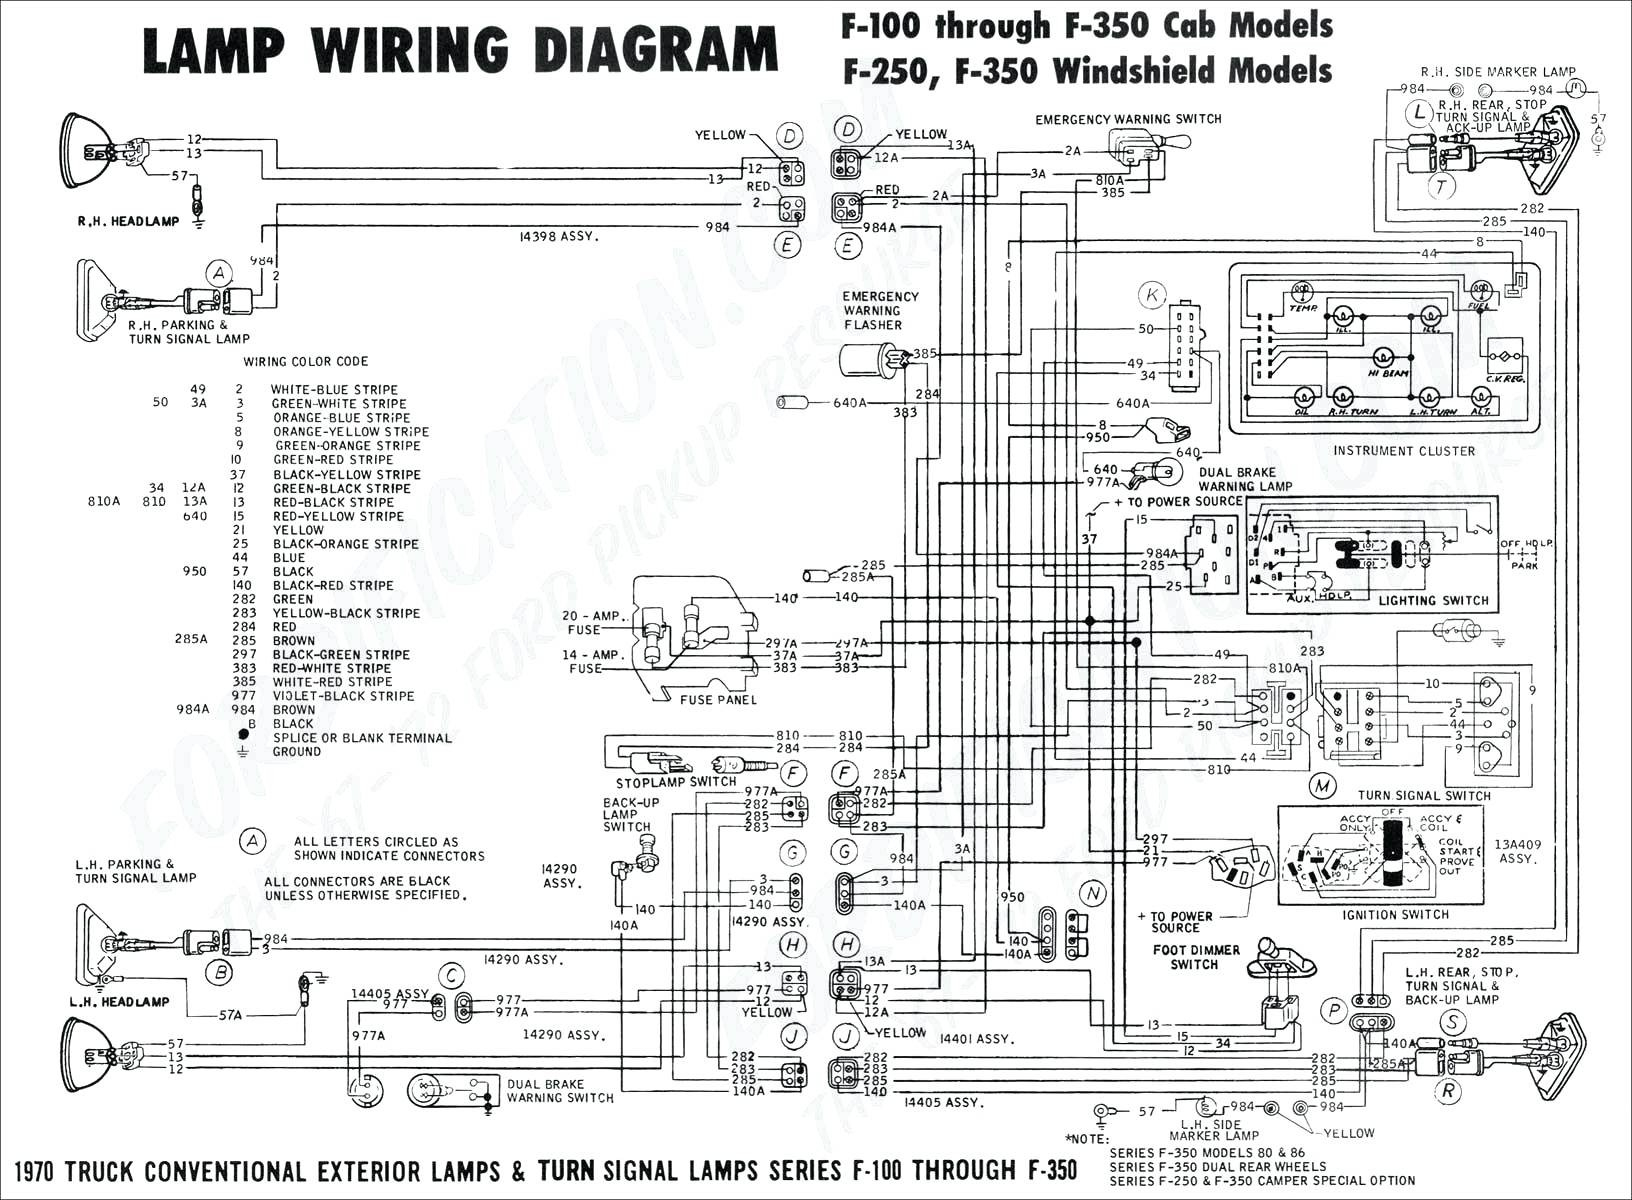 Dxt X2769Ui Wiring Color Diagram | Manual E-Books - Pioneer Dxt-X2769Ui Wiring Diagram